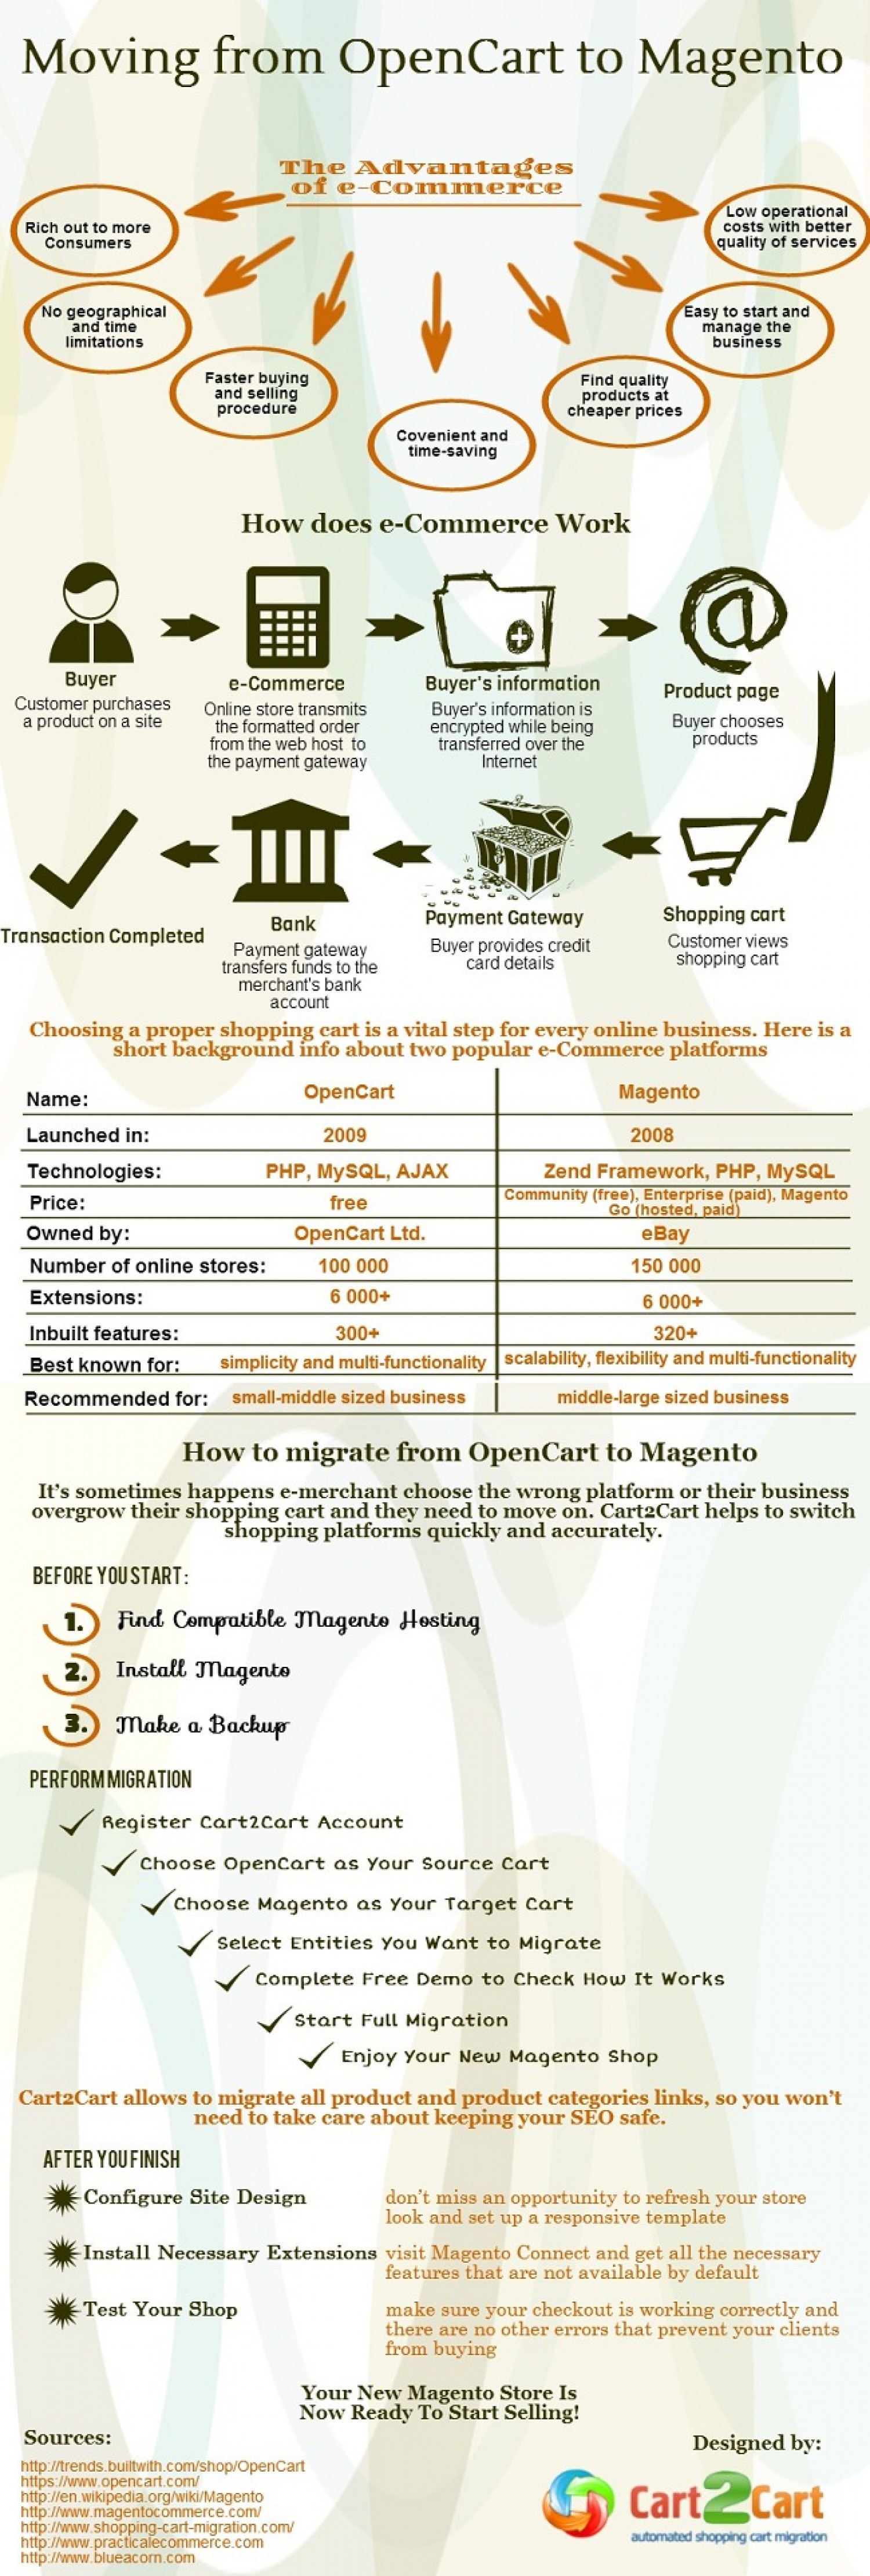 Moving from OpenCart to Magento Infographic